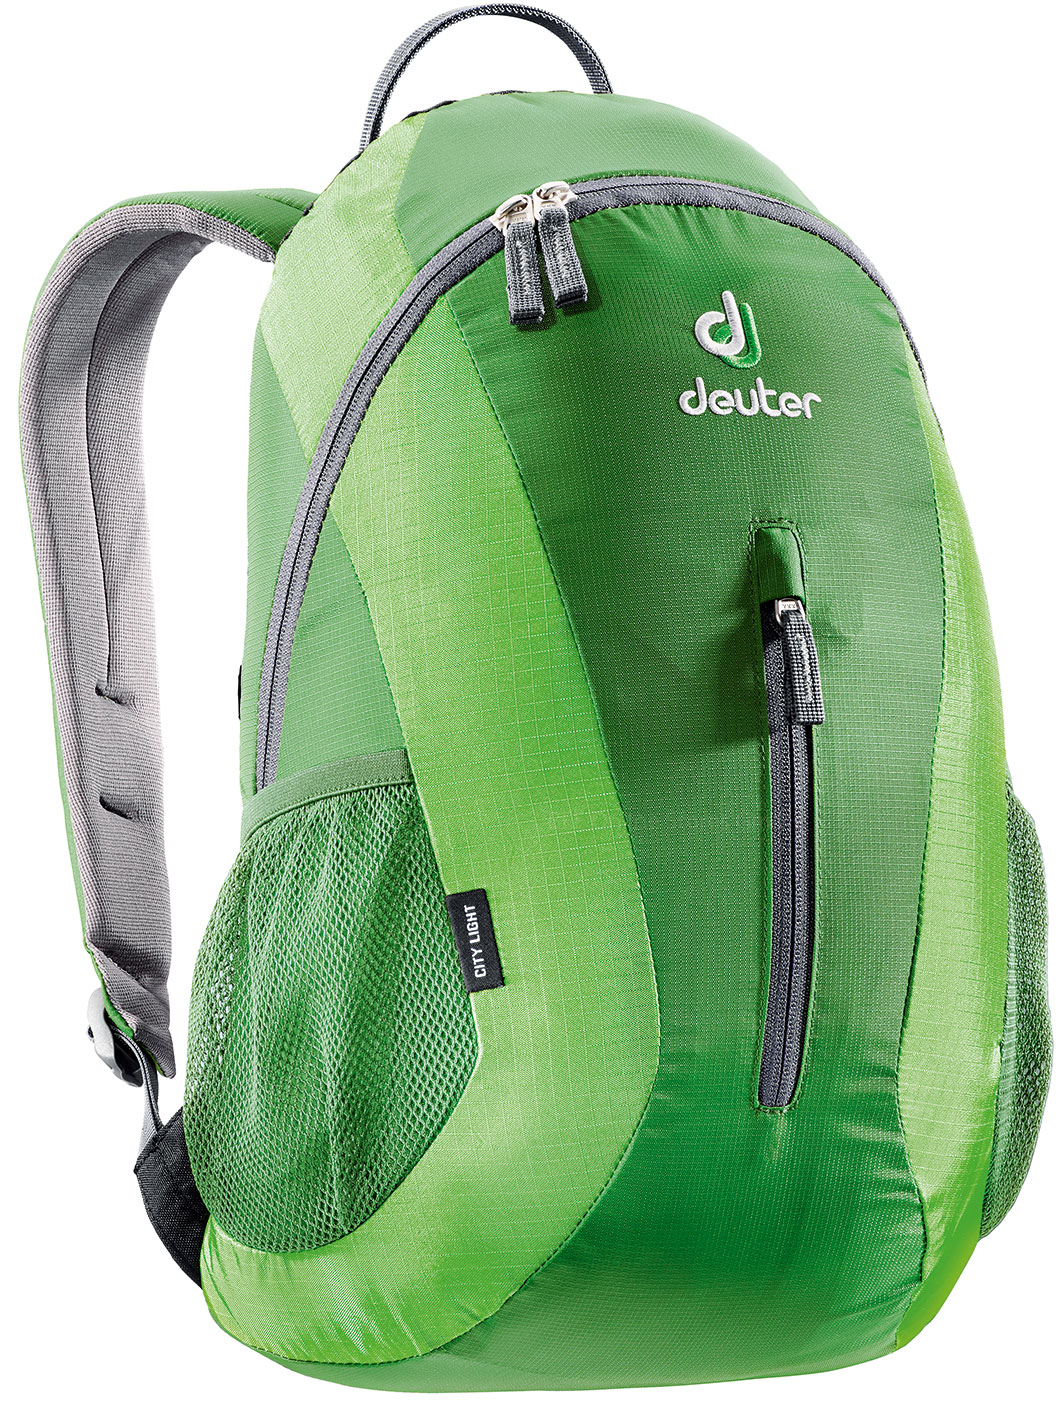 Deuter City Light emerald-spring-30